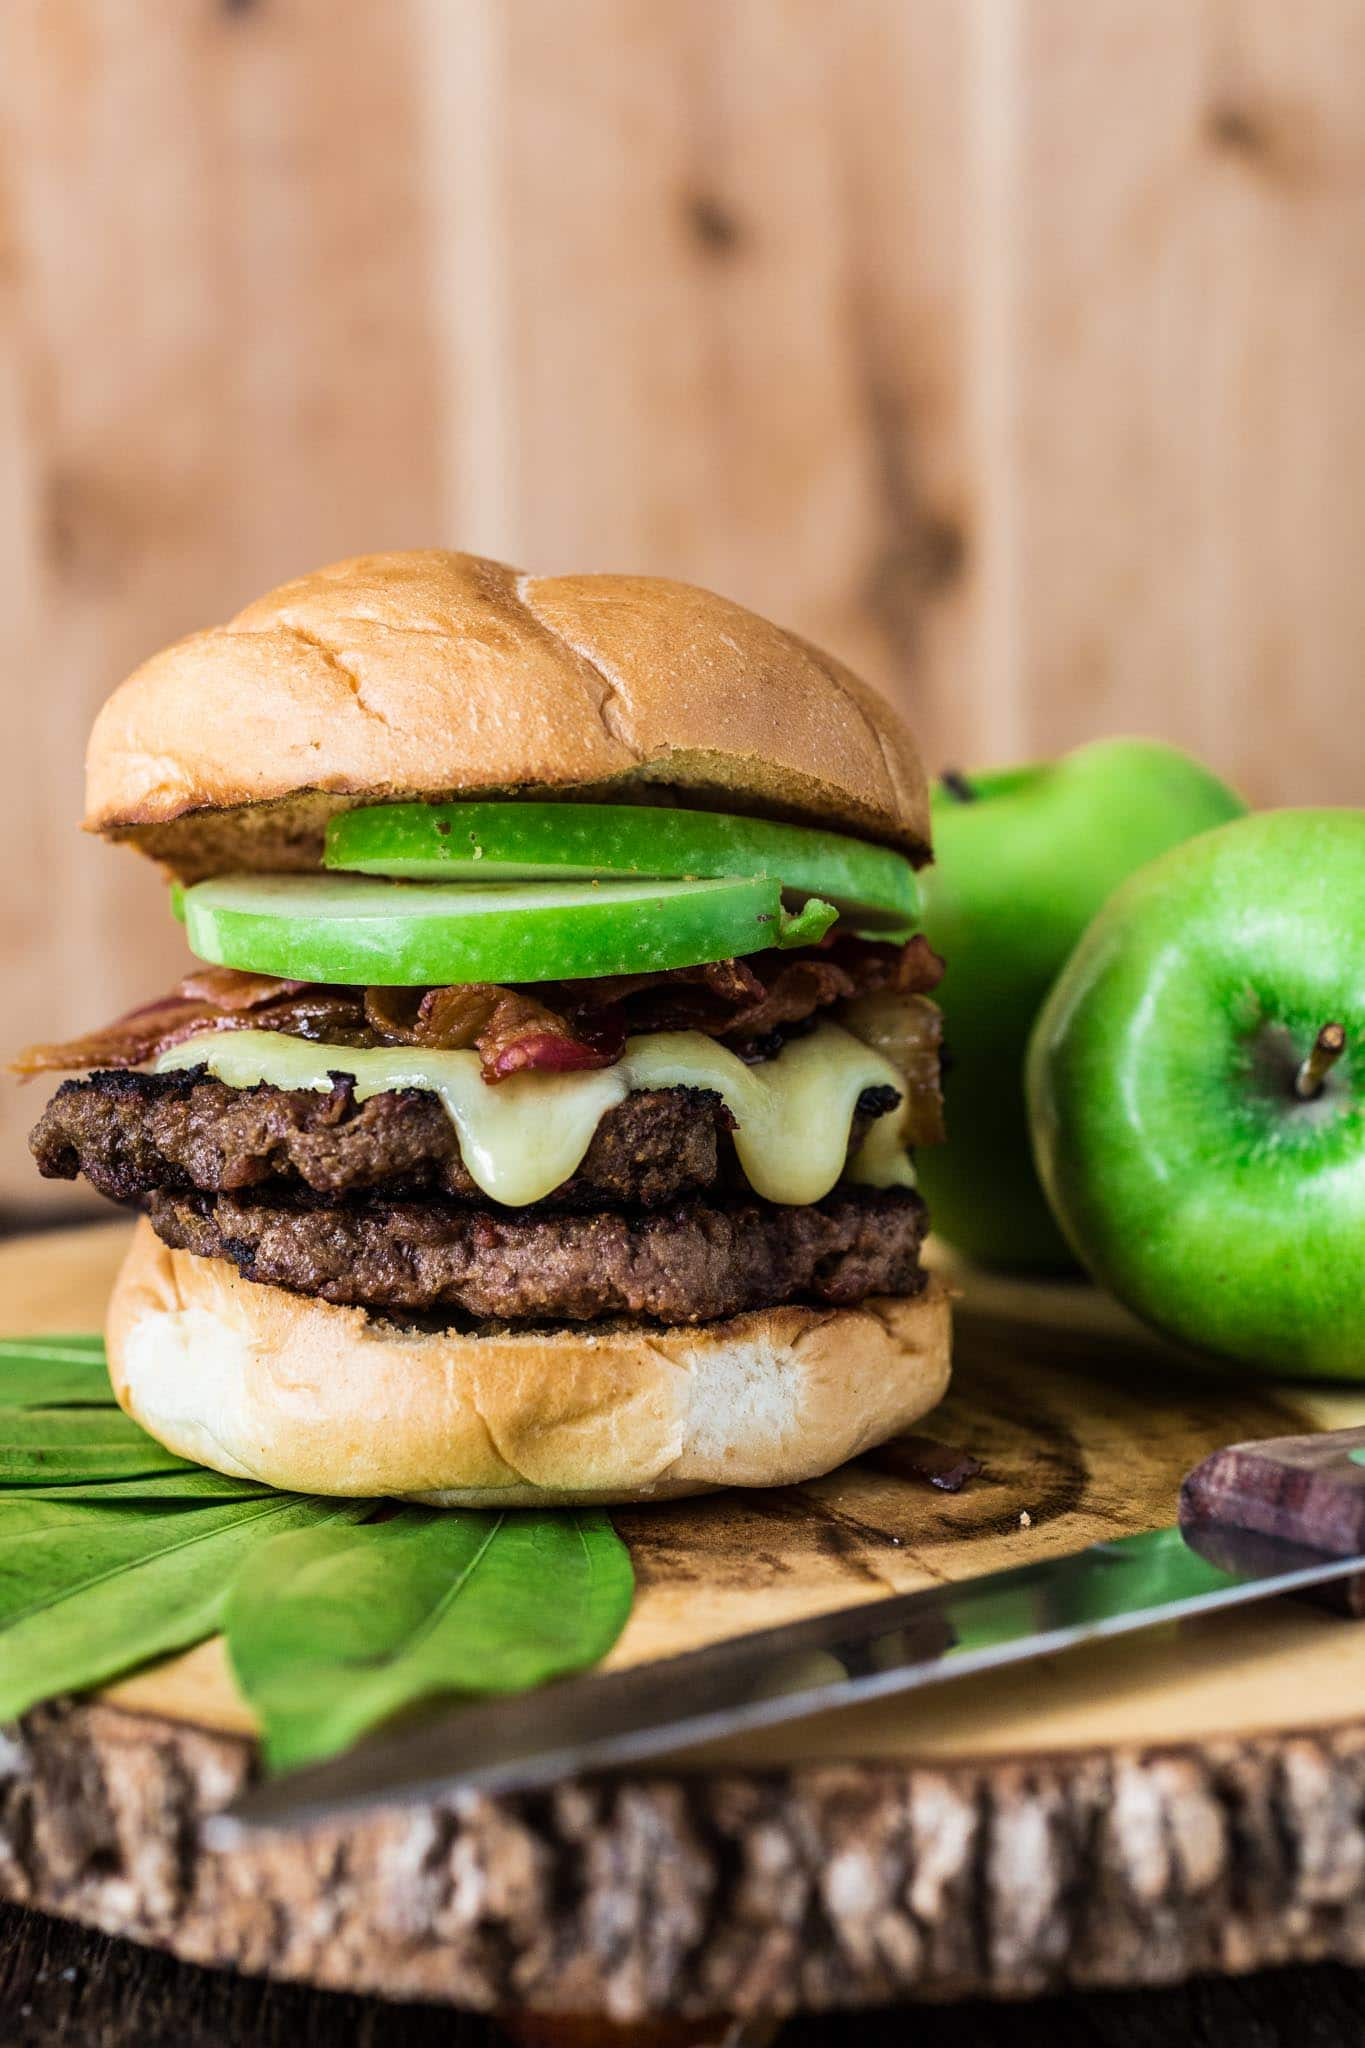 Apple, Bacon and Brie Burger | www.oliviascuisine.com | The epitome of fall, this delicious Apple, Bacon and Brie Burger will have you licking your fingers!